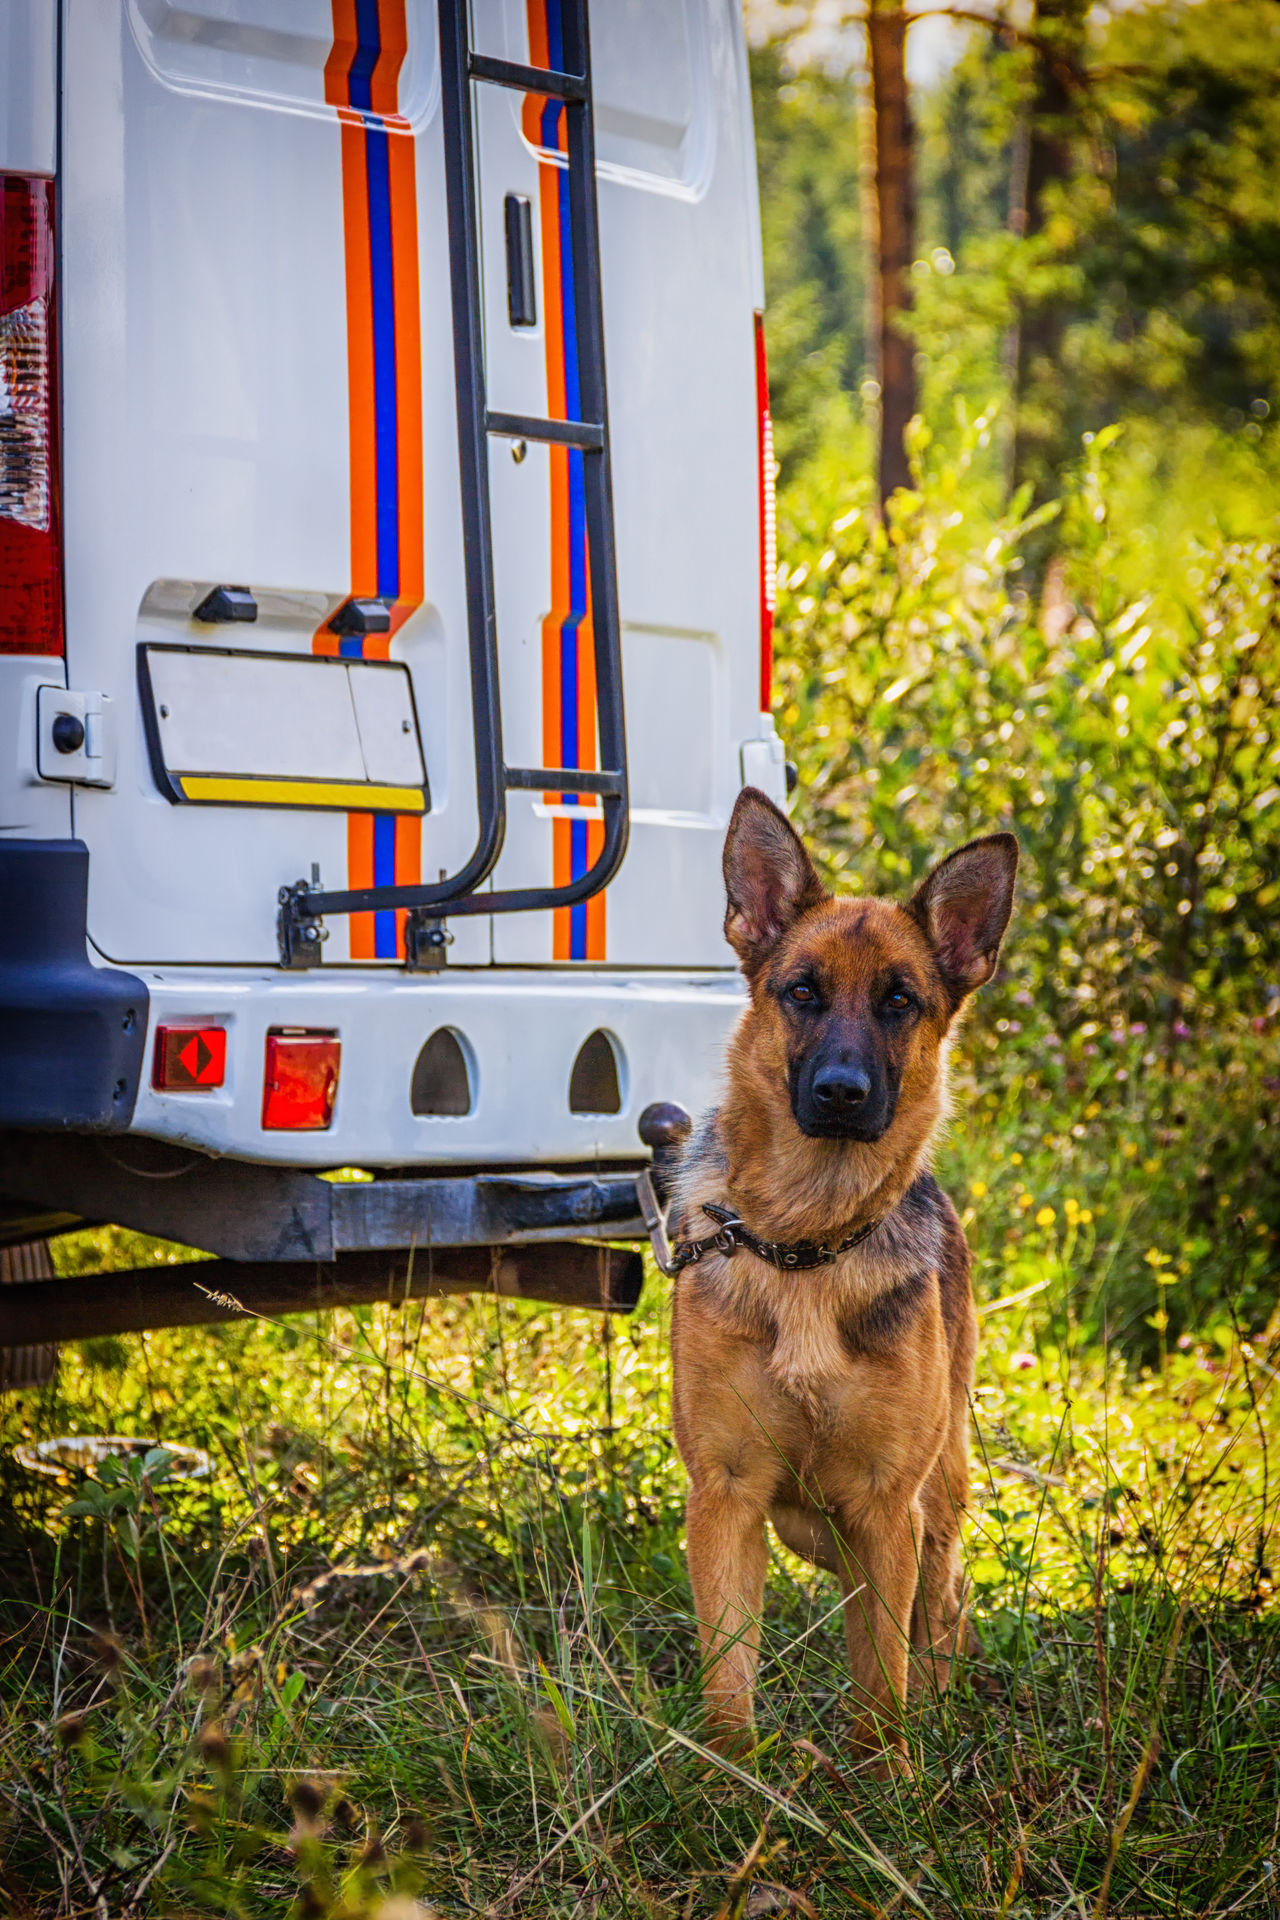 Dog service of EMERCOM of Russia. A rescue dog. The dog resting after a search for the missing in the forest of man. Animal Themes Day Dog Domestic Animals Emercom Grass Mammal Nature No People One Animal Outdoors Pets Rescue Rescuedog Russia